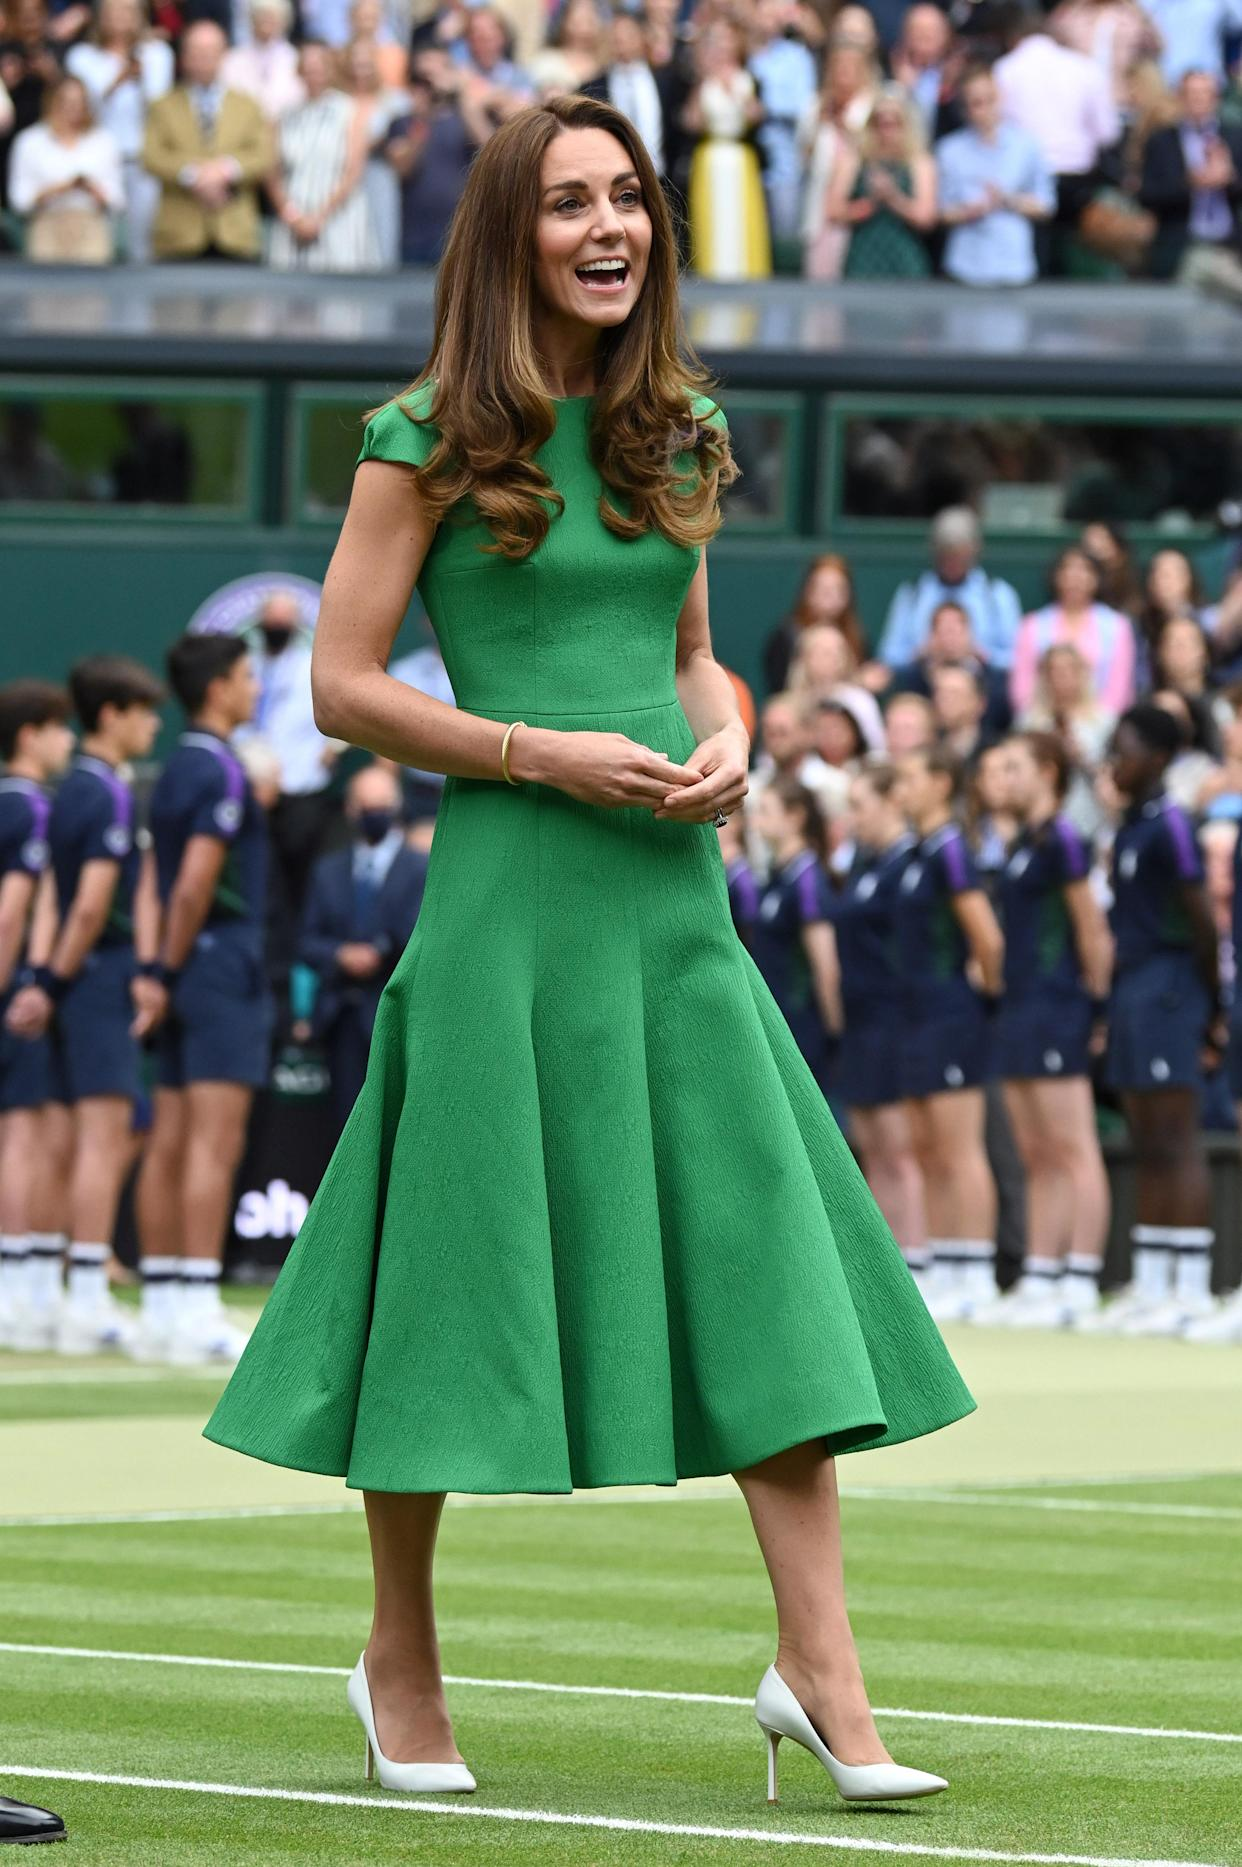 The Duchess of Cambridge wore an Emilia Wickstead dress and Jimmy Choo heels. (Getty Images)